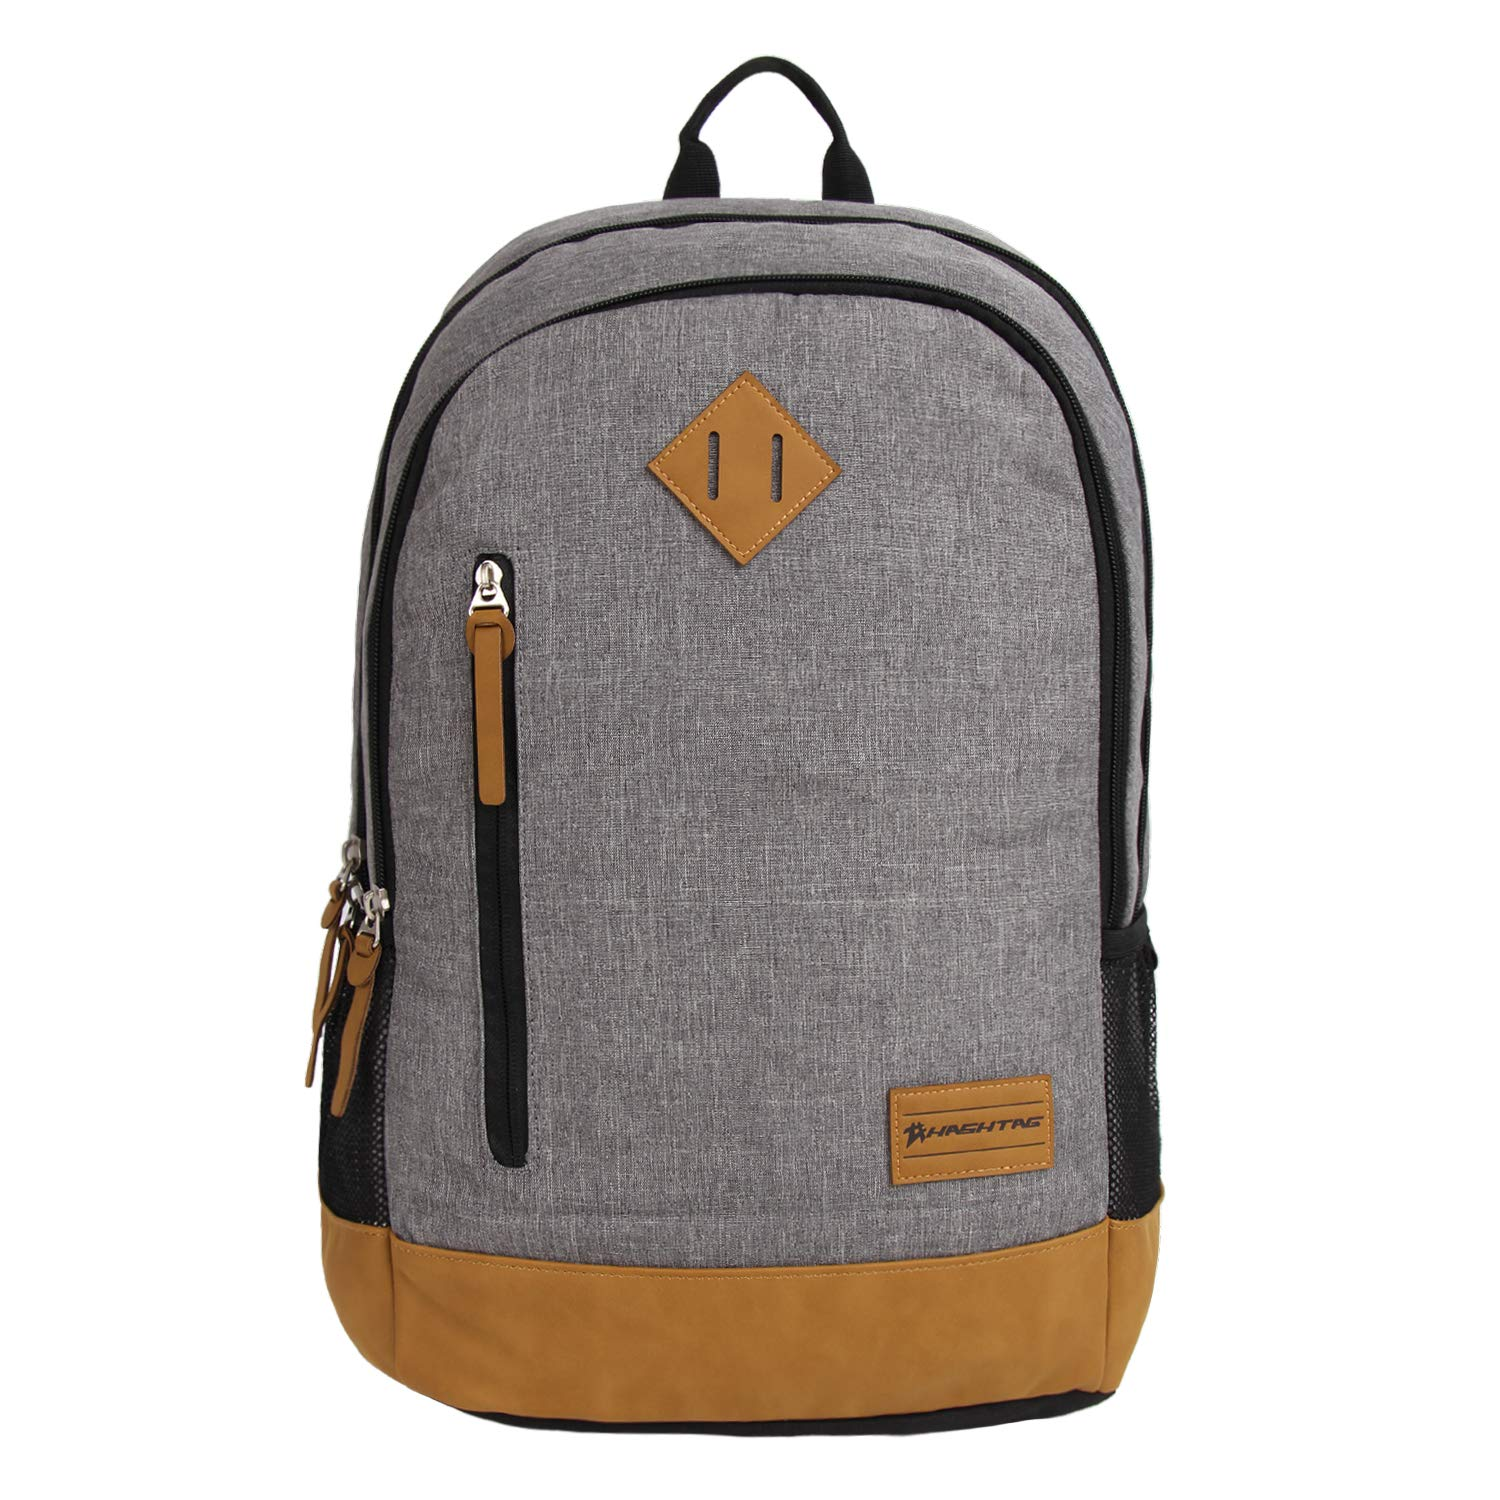 56156d6739 Hashtag Ritzy Polyester Grey Backpack - School Bag   College Bag   Travel  Bag   Backpack: Amazon.in: Bags, Wallets & Luggage